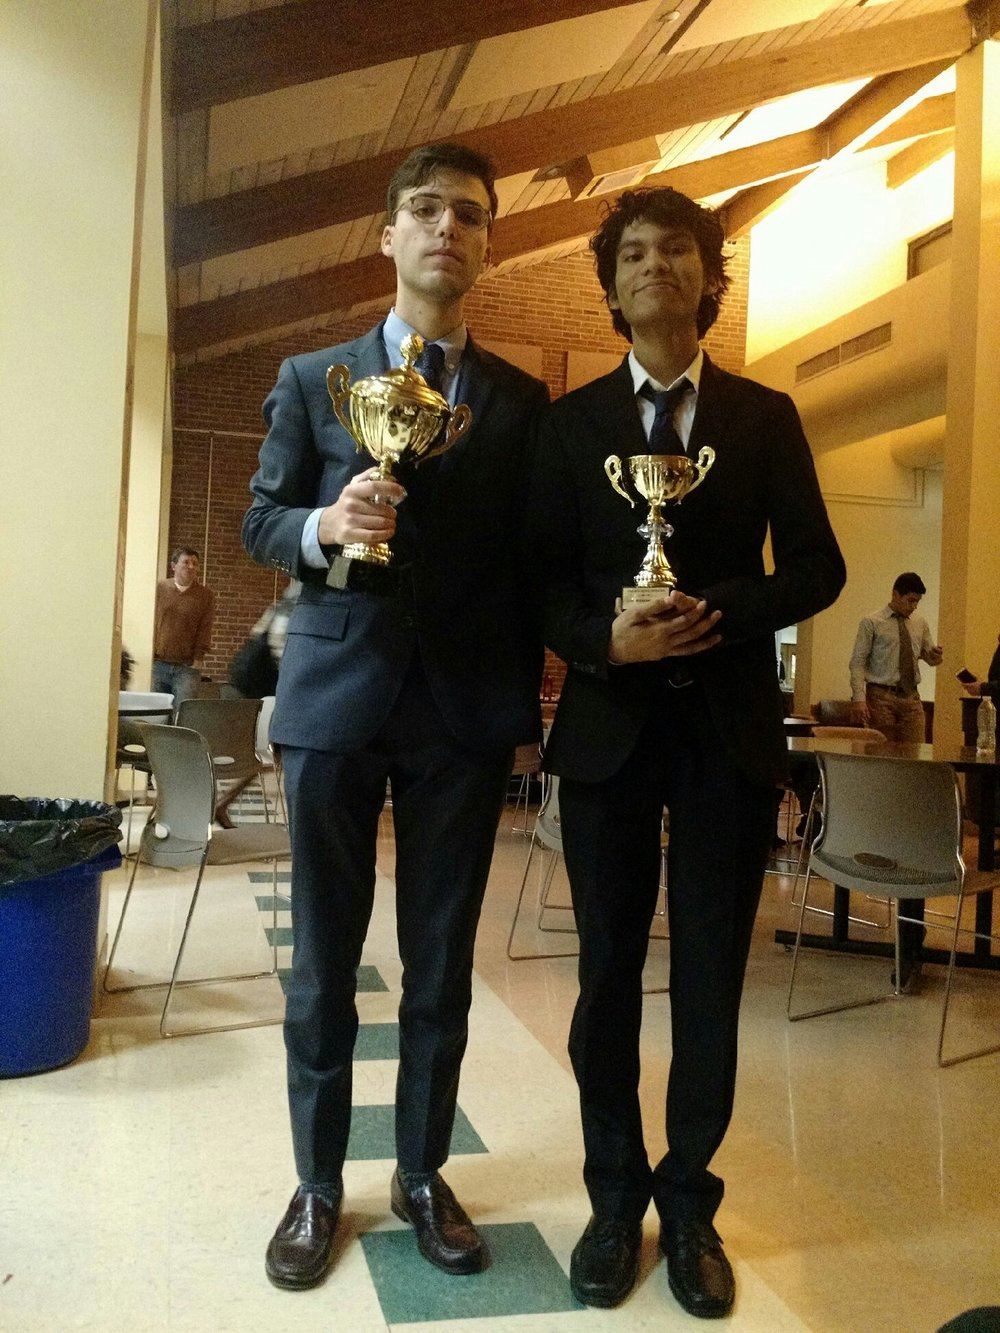 Asher Lasday, Champion & Shamaul Dilmohamed Finalist (8th Place) at Ridge Student Congress